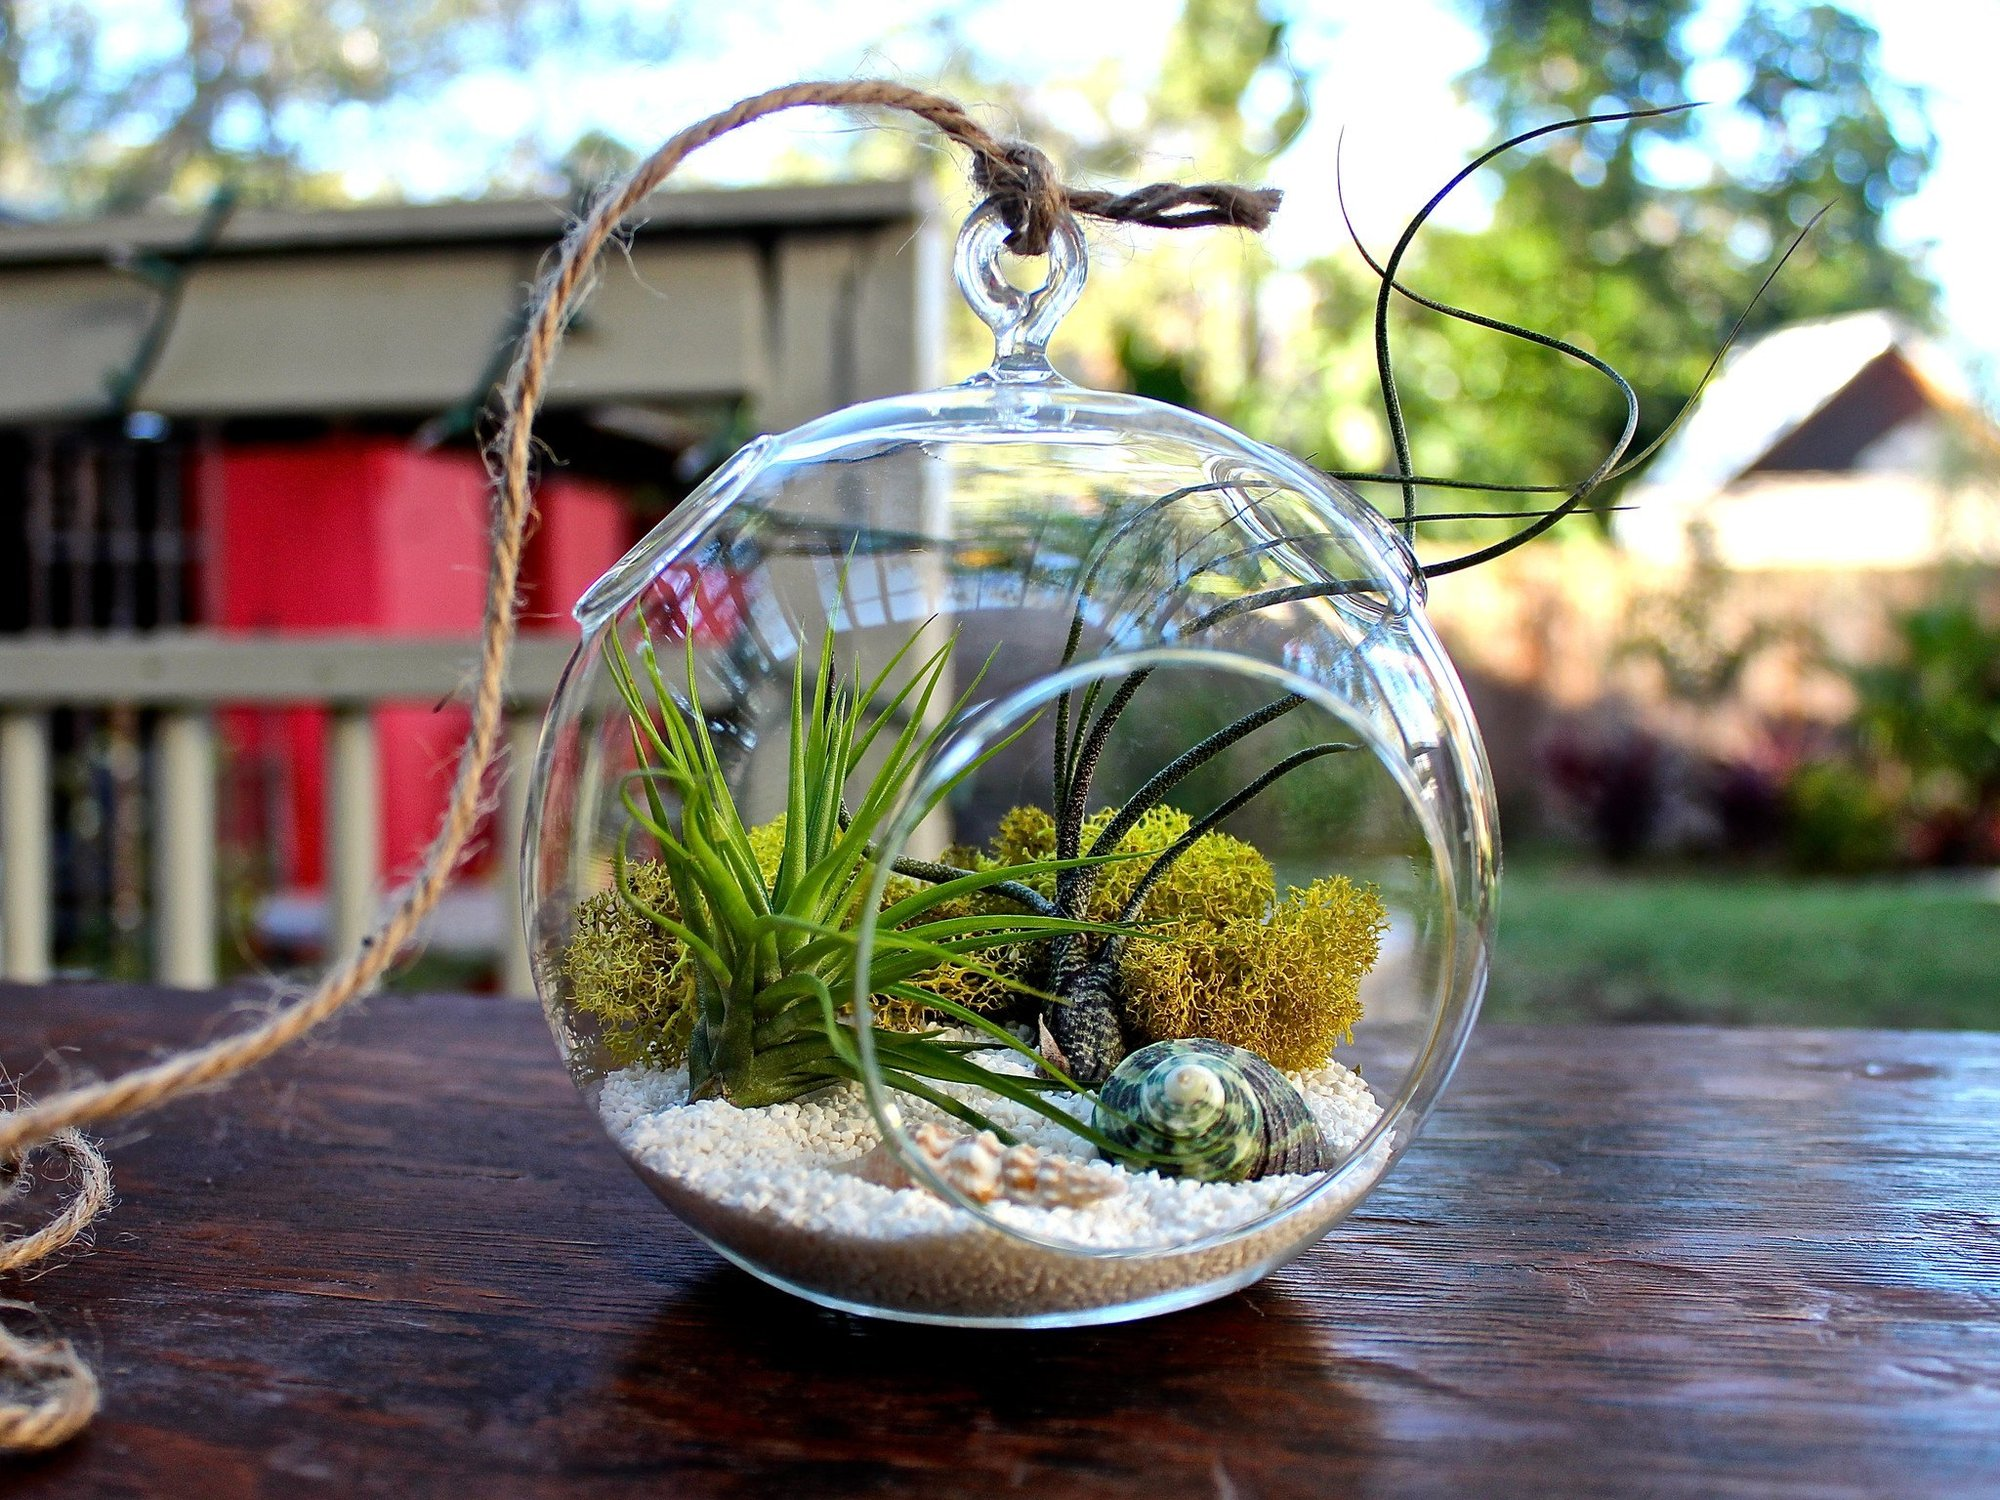 Terrarium plants be equipped indoor plant terrarium kit be equipped best potting soil for terrariums be equipped terrarium home decor